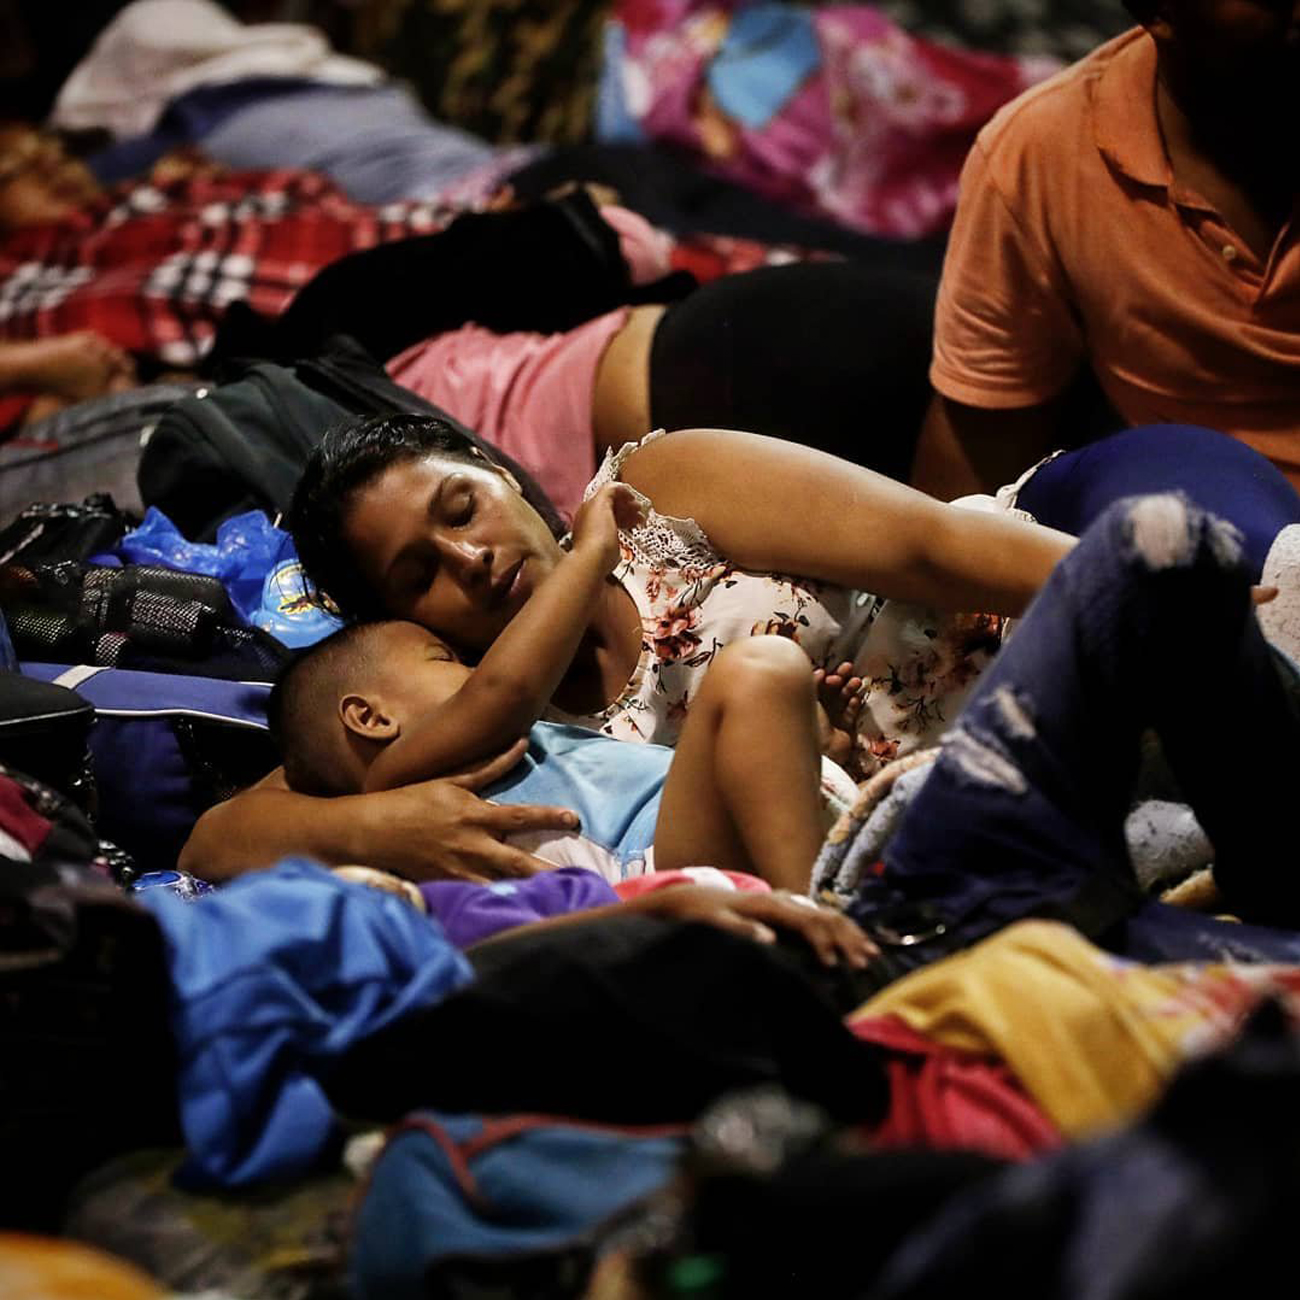 Image of the immigrant caravan from Mexico and Honduras